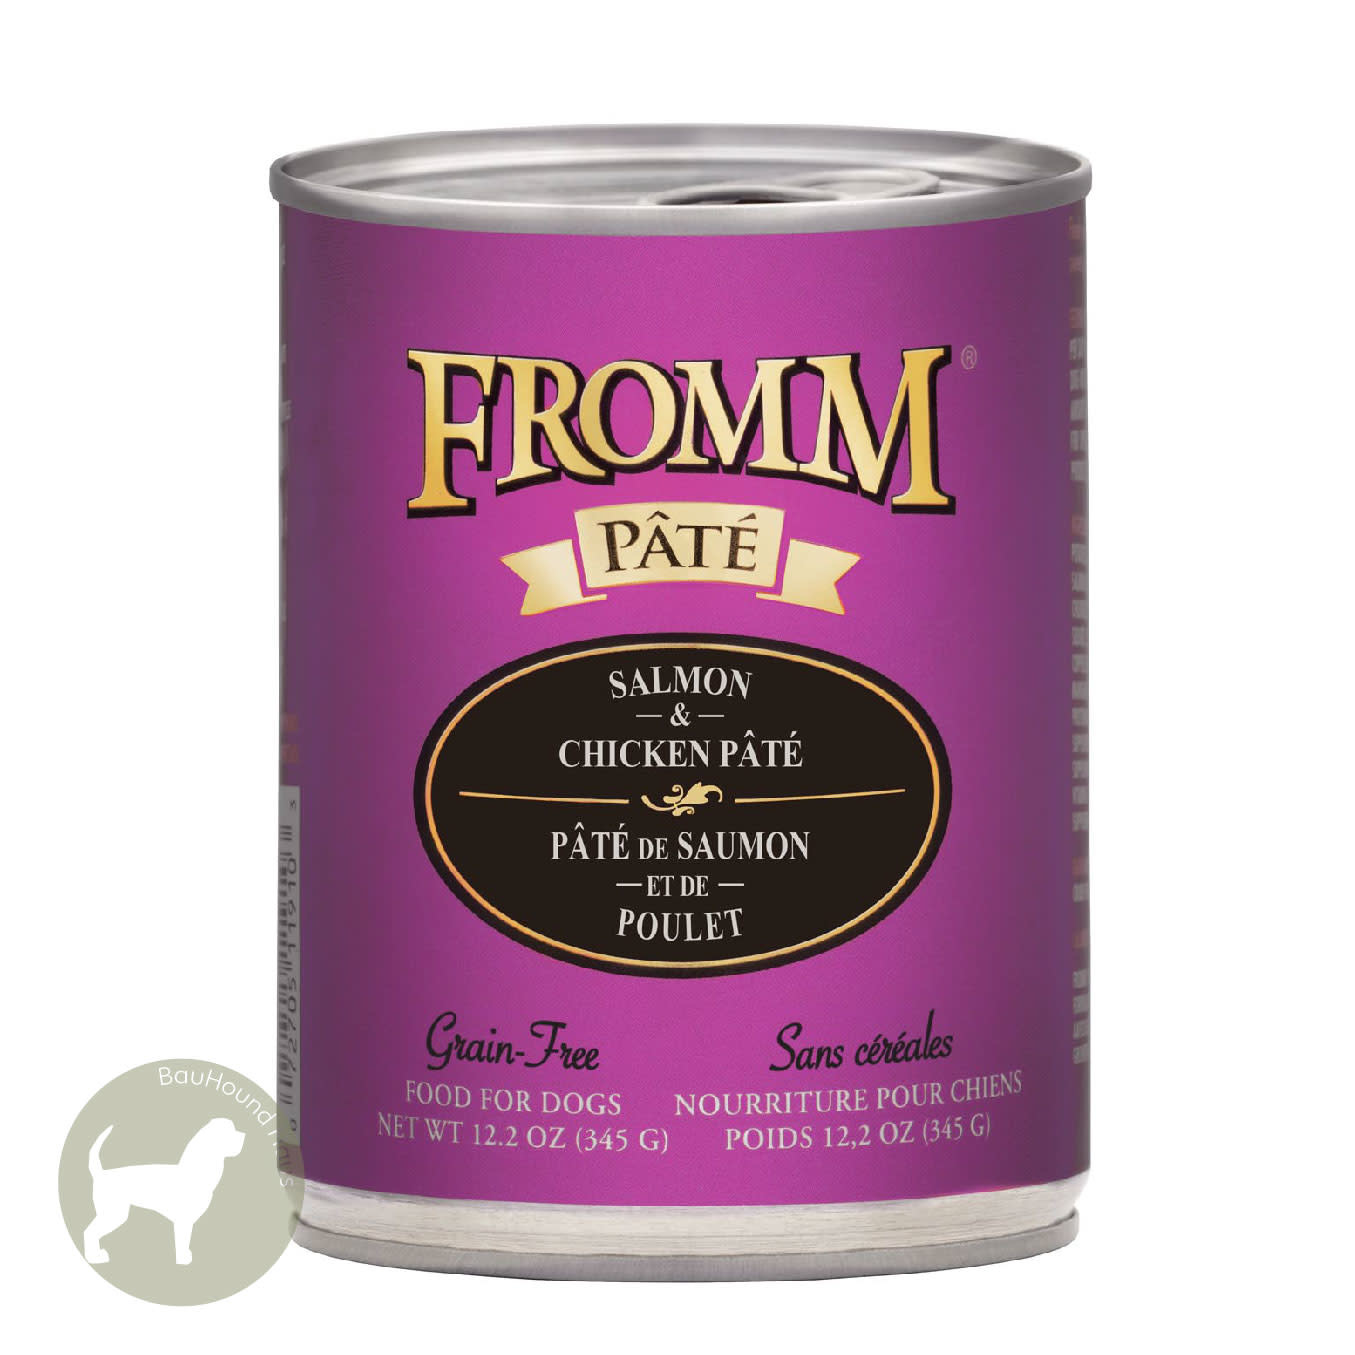 Fromm Fromm Salmon & Chicken Pate Dog Can, 13oz